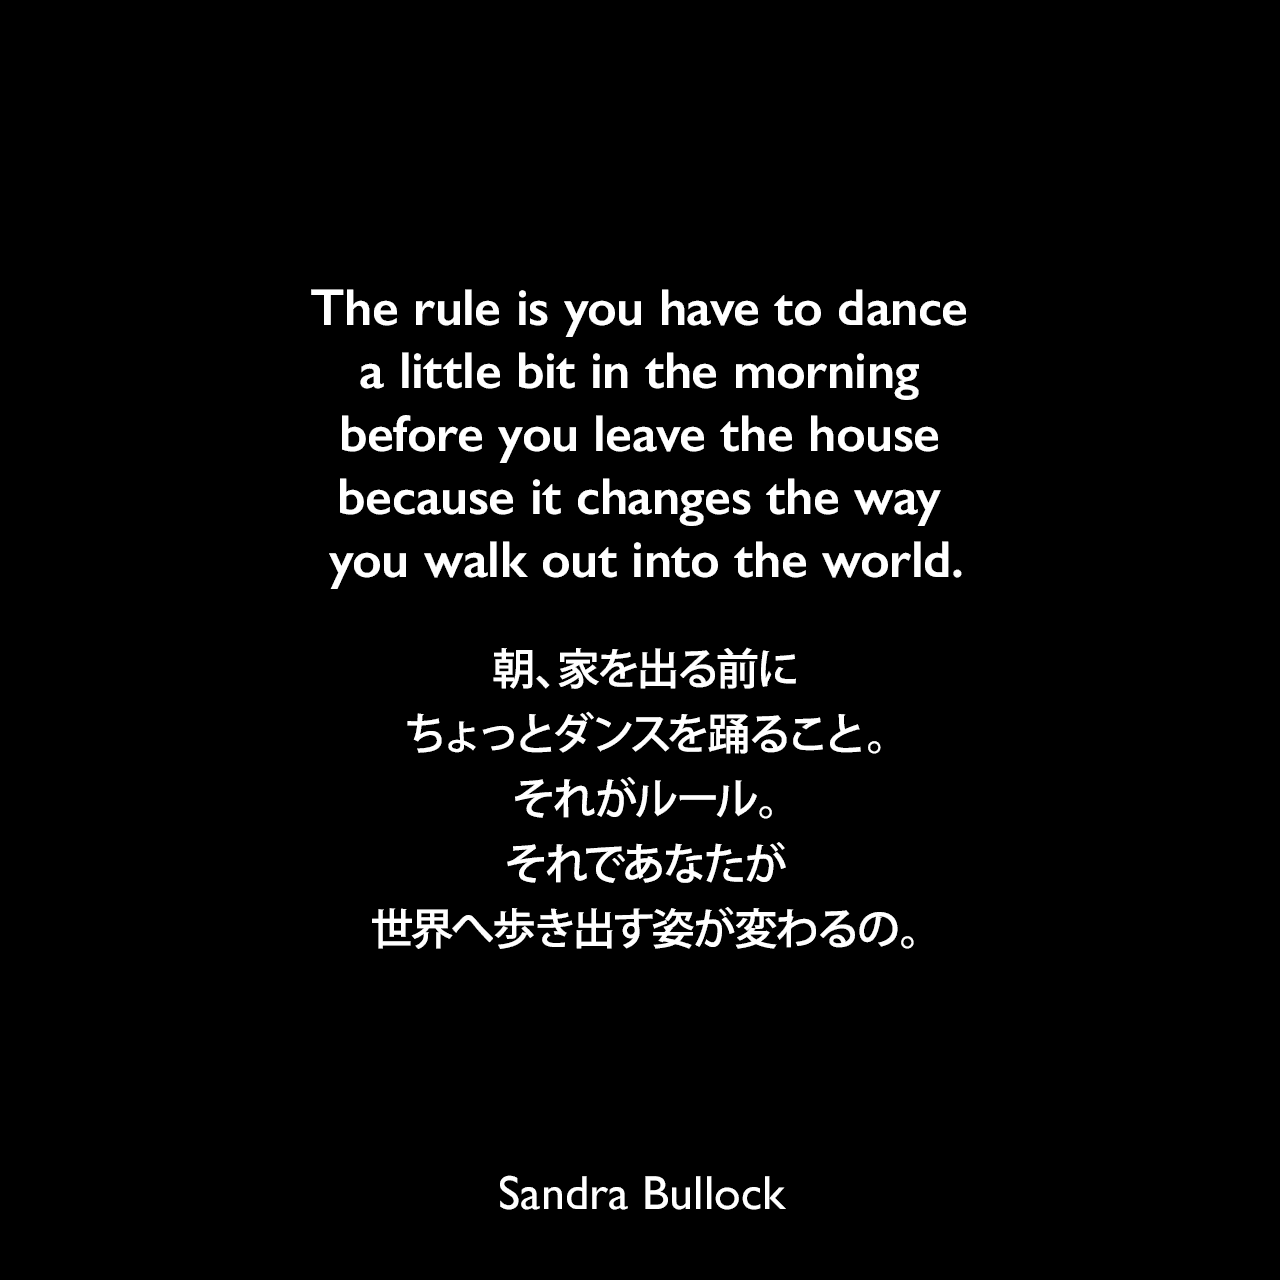 The rule is you have to dance a little bit in the morning before you leave the house because it changes the way you walk out into the world.朝、家を出る前にちょっとダンスを踊ること。それがルール。それであなたが世界へ歩き出す姿が変わるの。Sandra Bullock